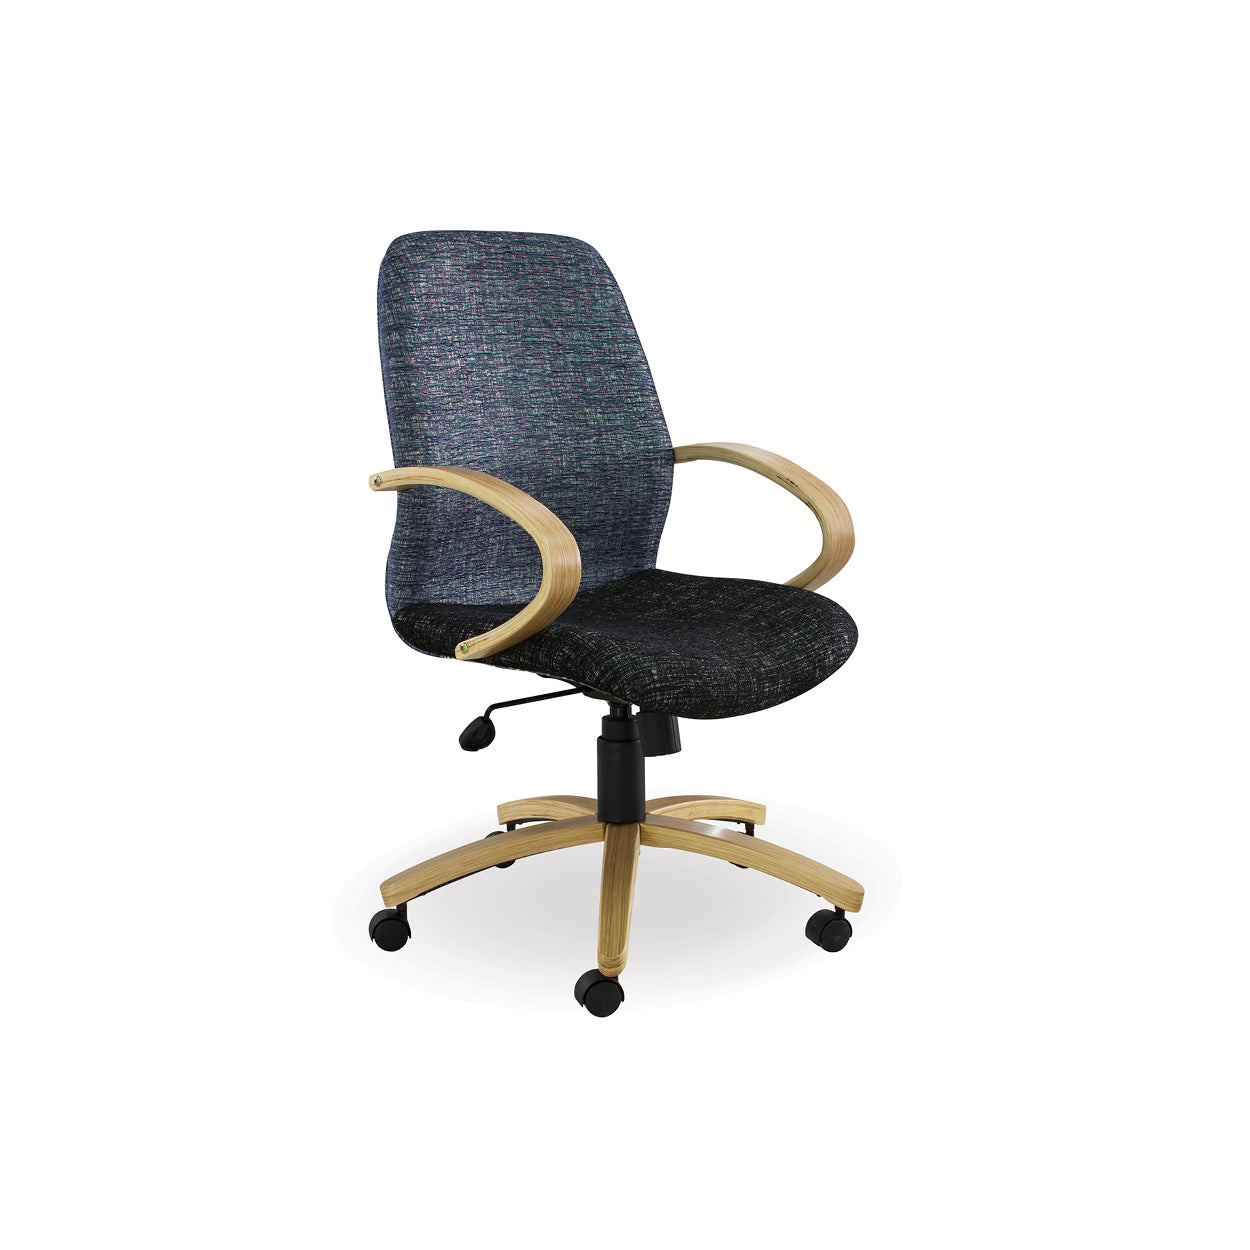 Hedcor Morant Wood mid back office chair